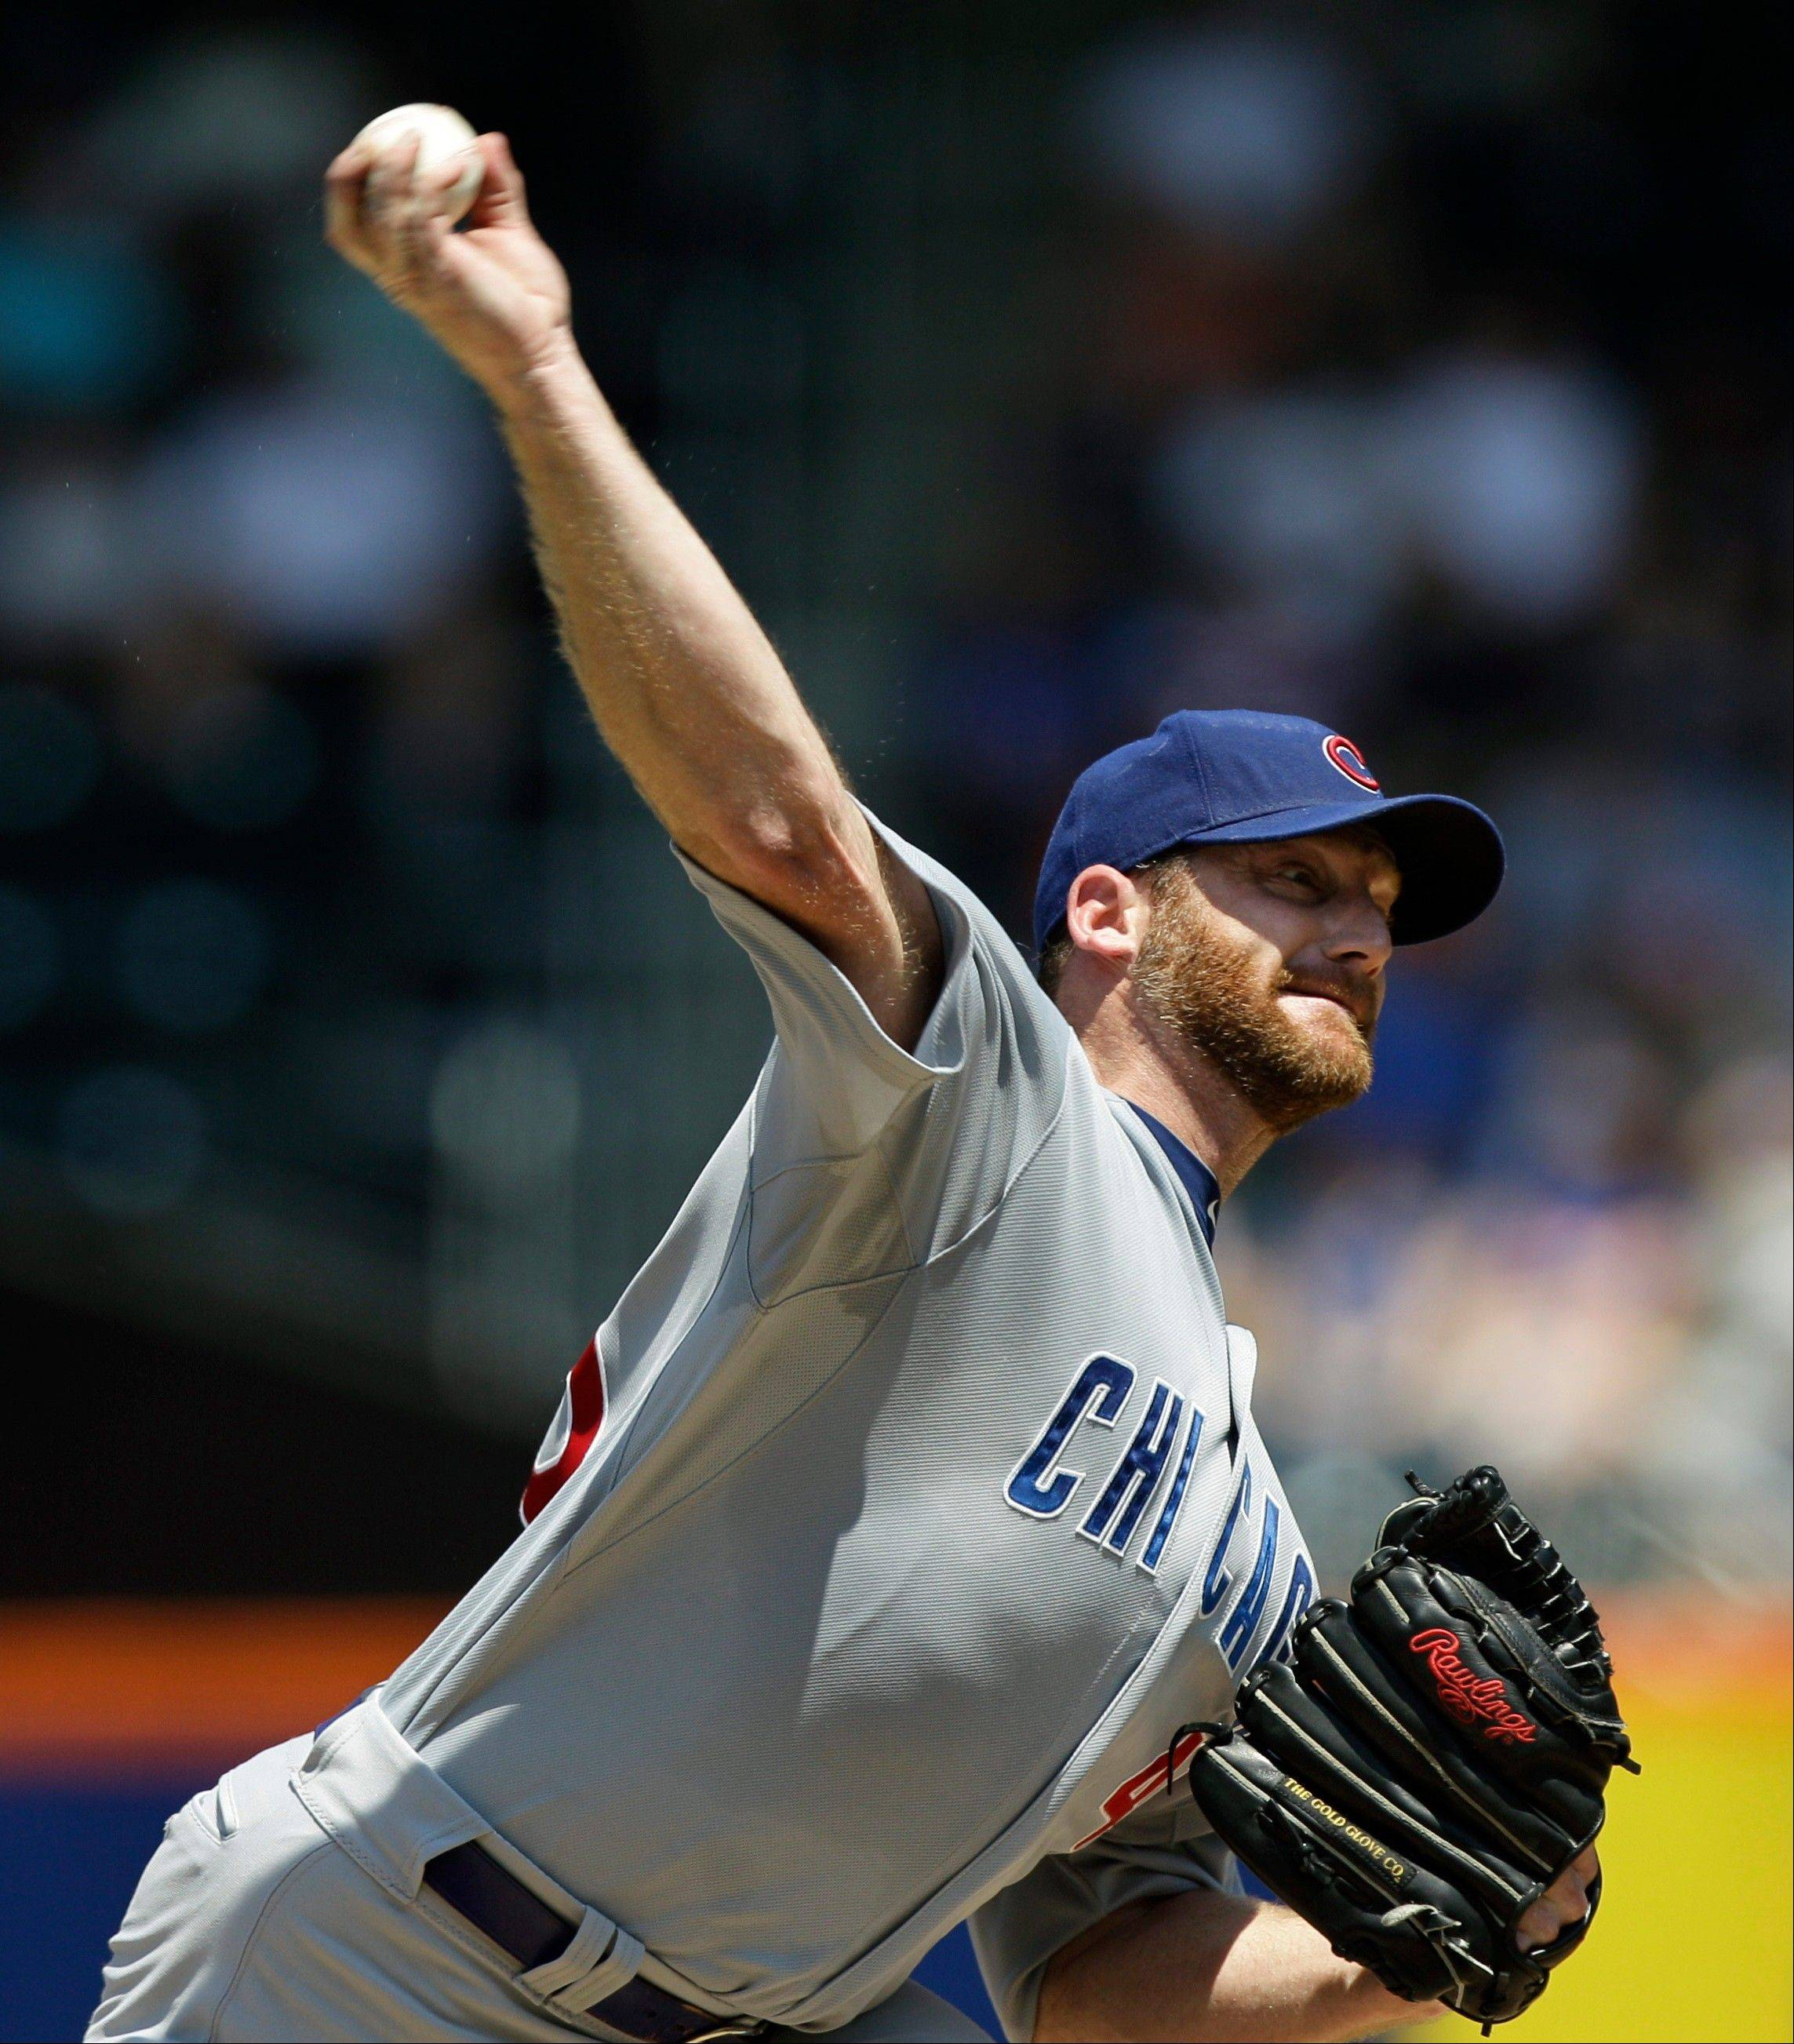 Ryan Dempster�s career with the Cubs has far exceeded anything Len Kasper expected � on the field and in the clubhouse and the community.